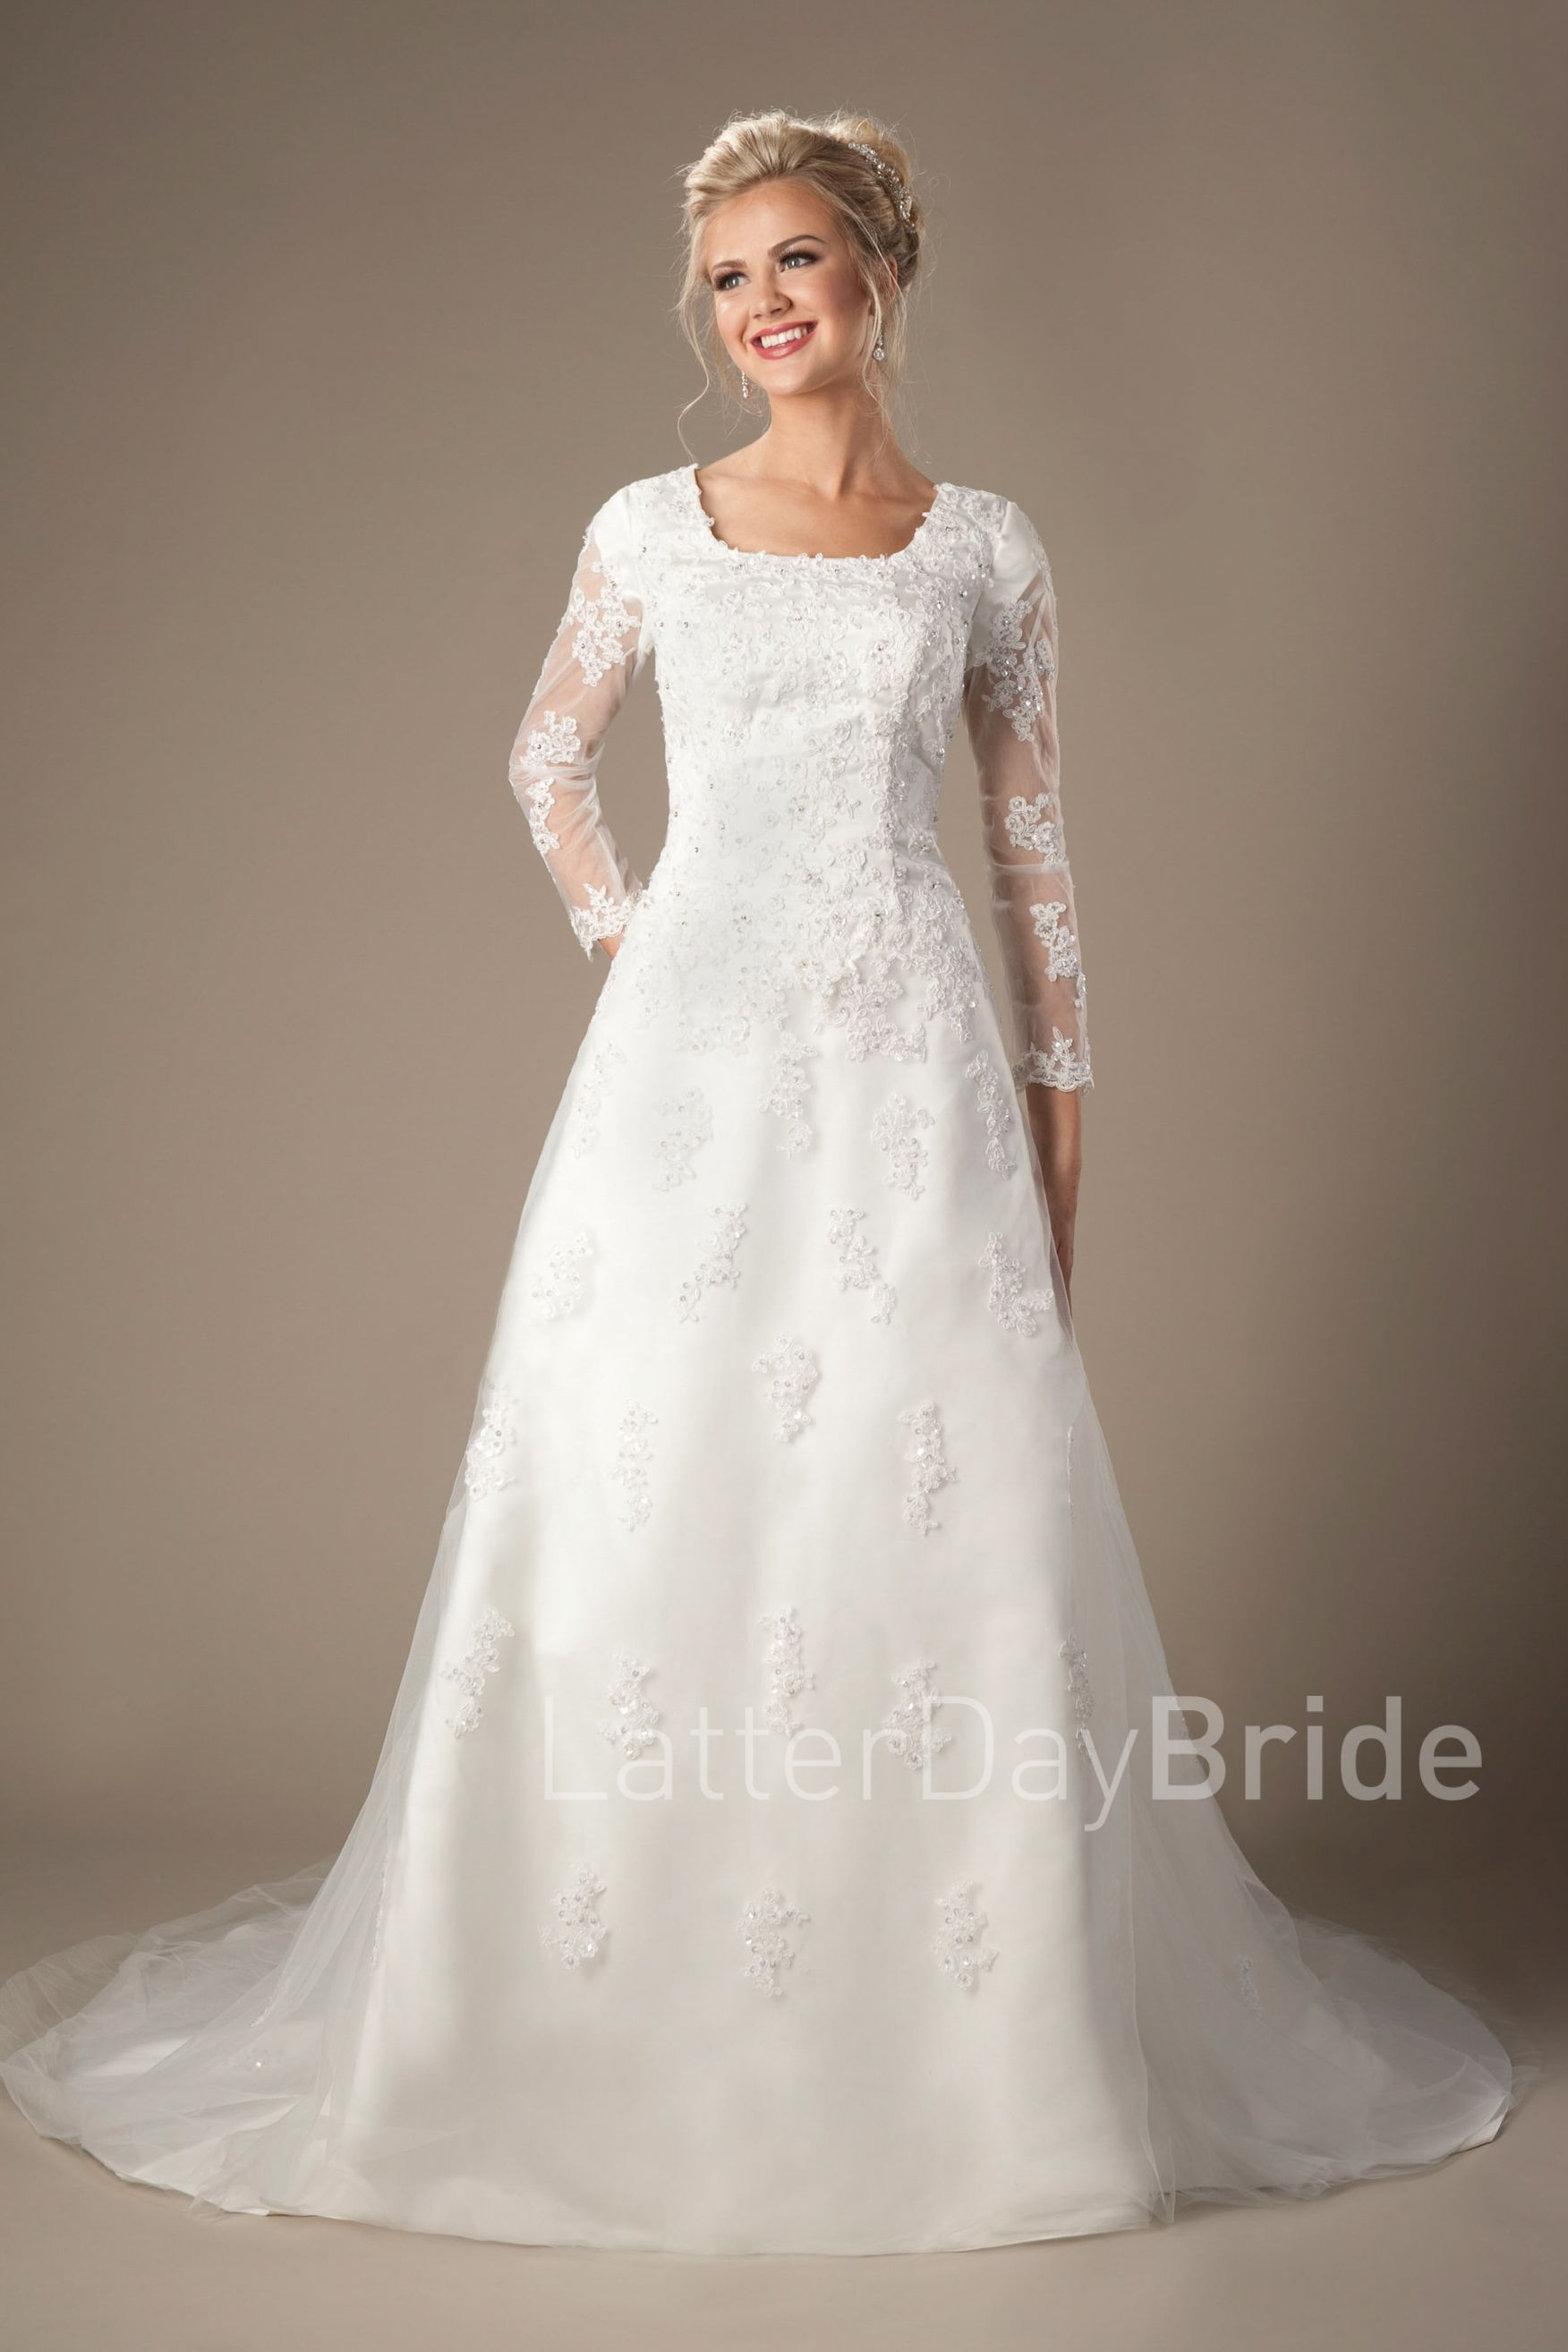 Cheap Modest Wedding Dress Buy Quality Directly From China Gowns Suppliers Vestido De Noiva Lace Tulle Dresses With